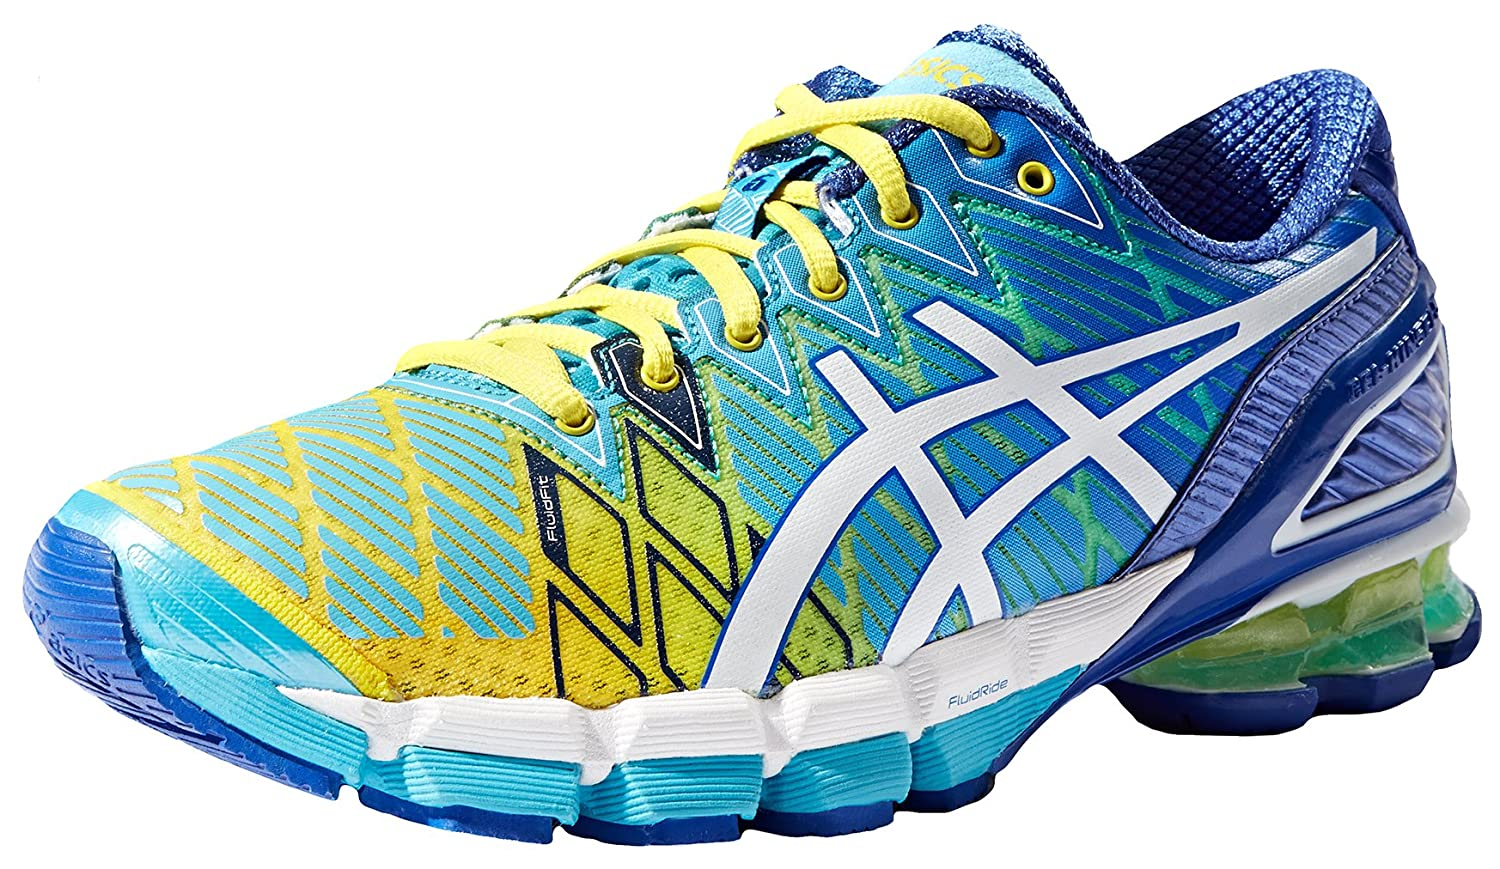 promo code 12ef9 ecc3b ASICS Women s Gel-Kinsei 5 Running Shoe,Yellow White Turquoise,9.5 M US   Amazon.in  Shoes   Handbags